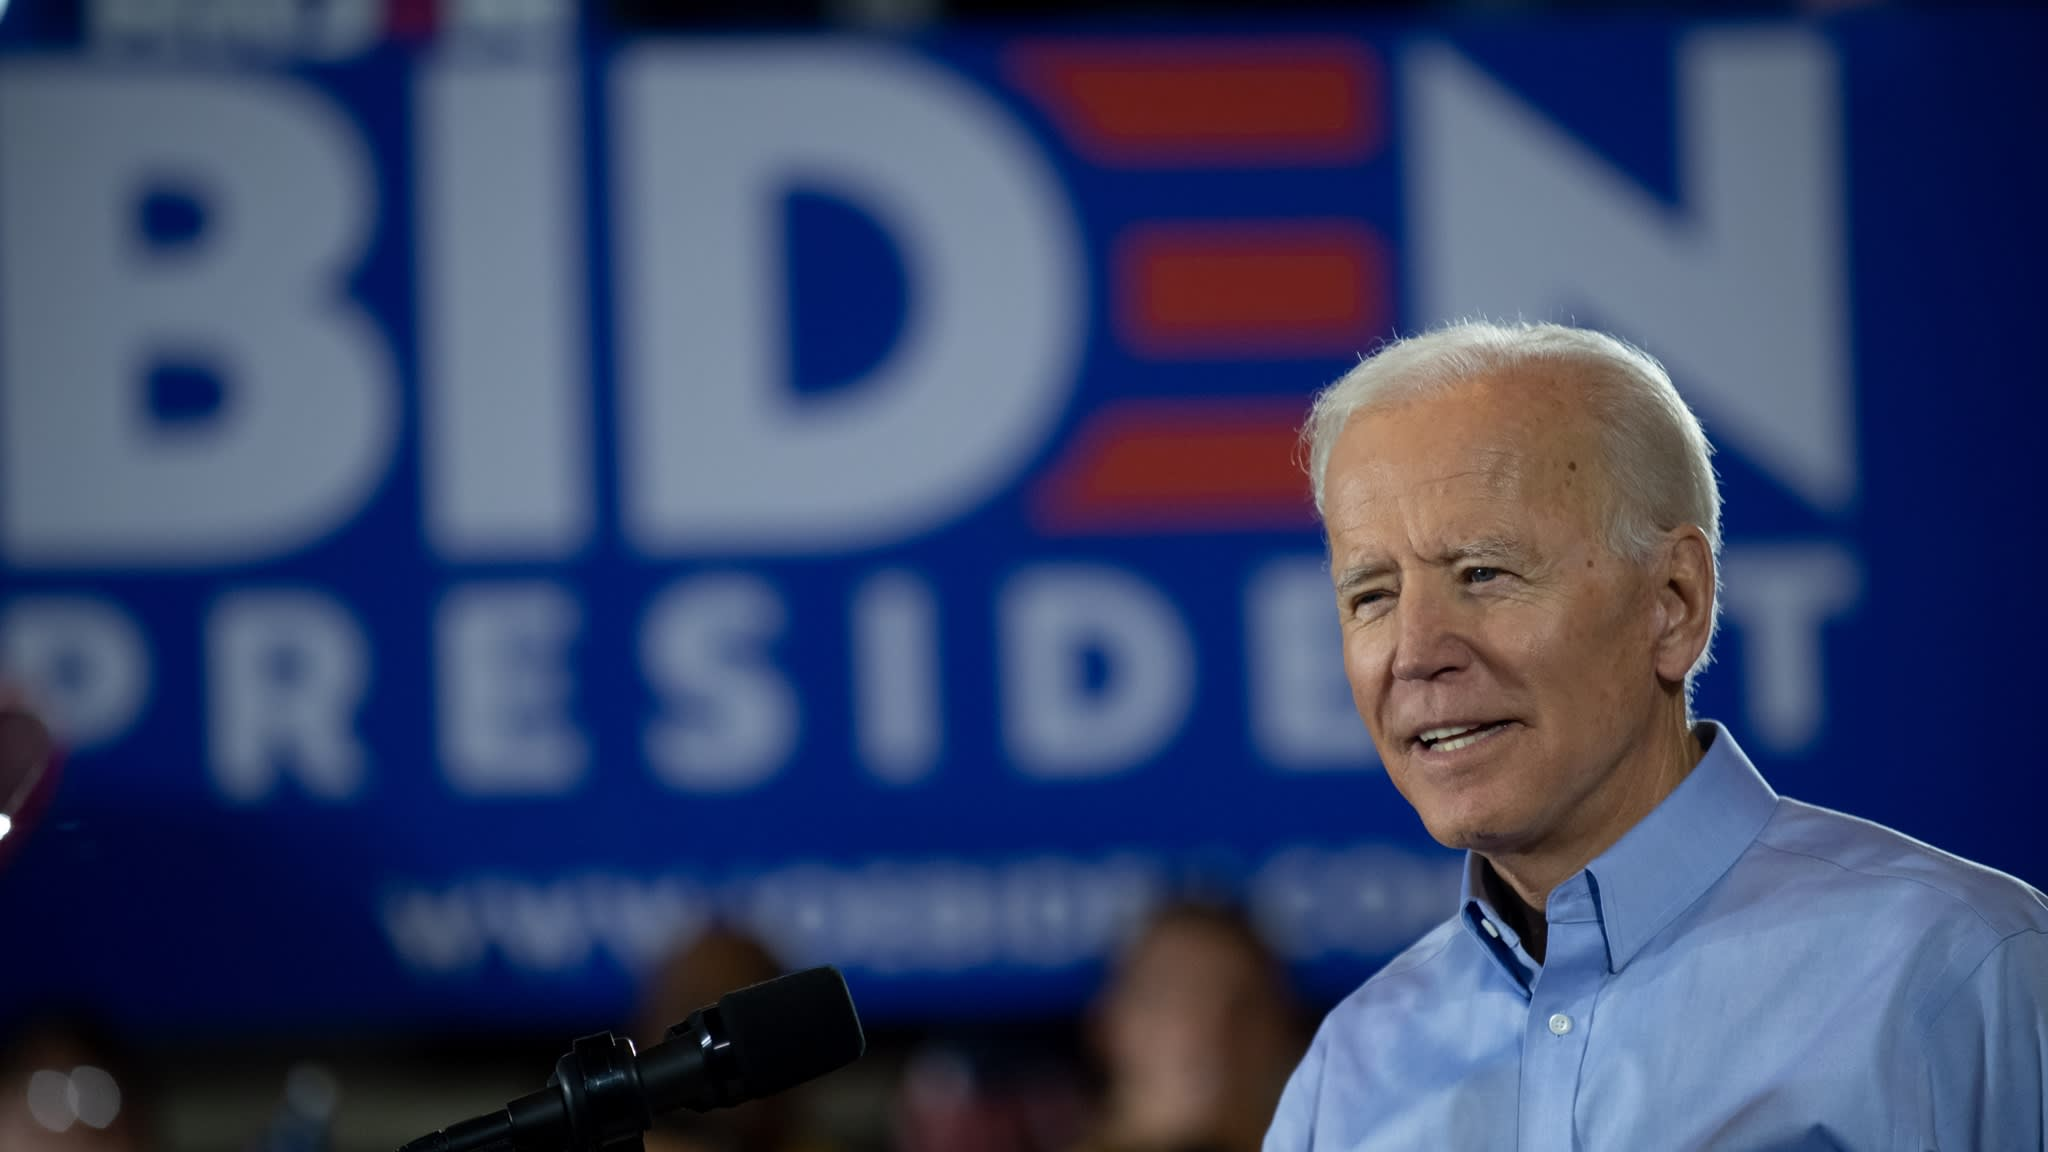 The current Democratic front-runner, former Vice President Joe Biden never mentioned free trade or TPP at his first recent campaign rally in Pittsburgh. © Getty Images